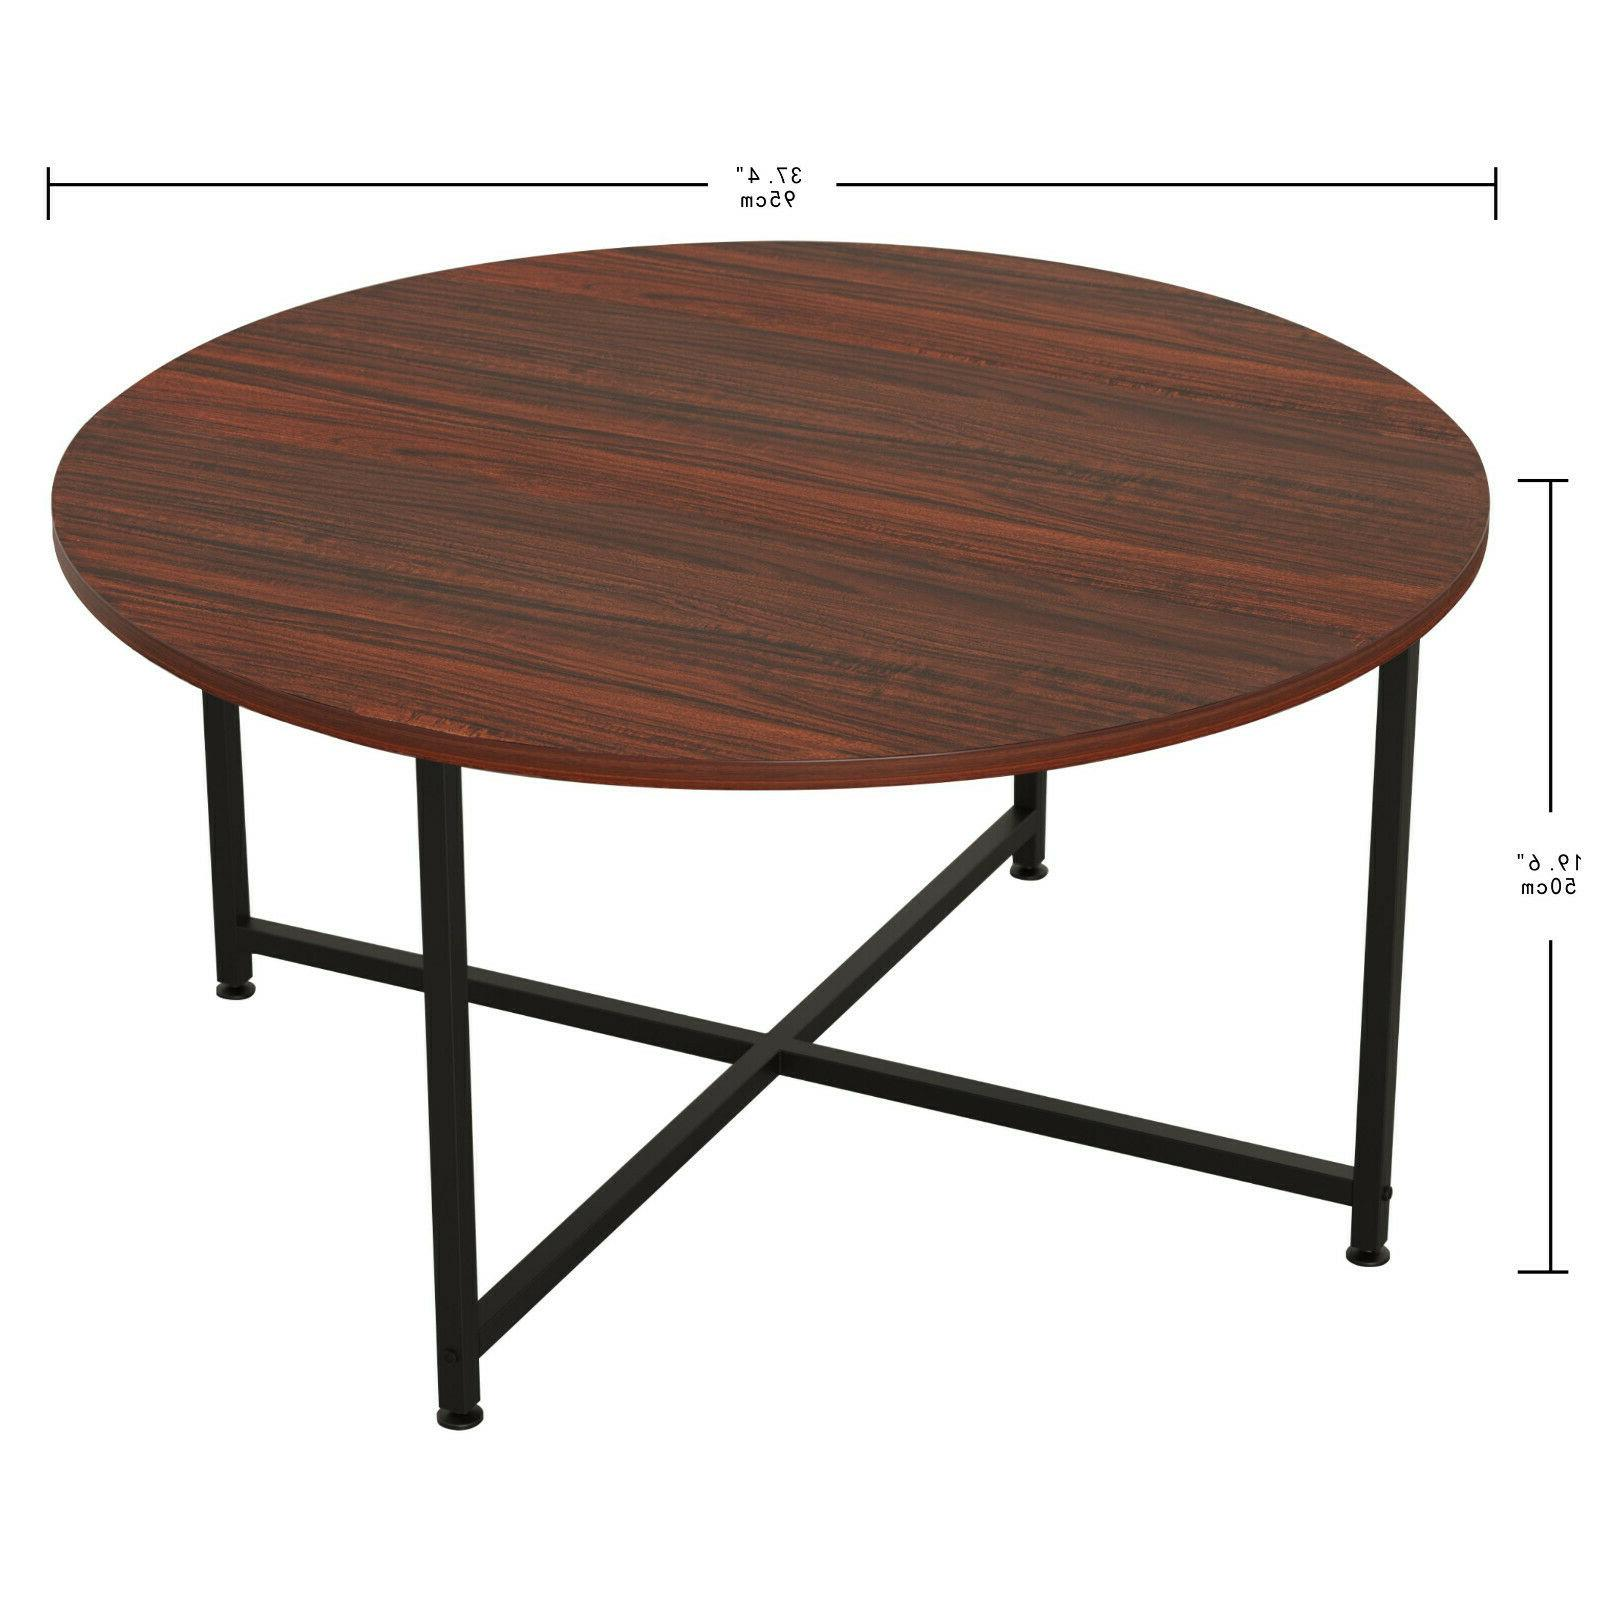 IRONCK for Living Table with Storage Shelf